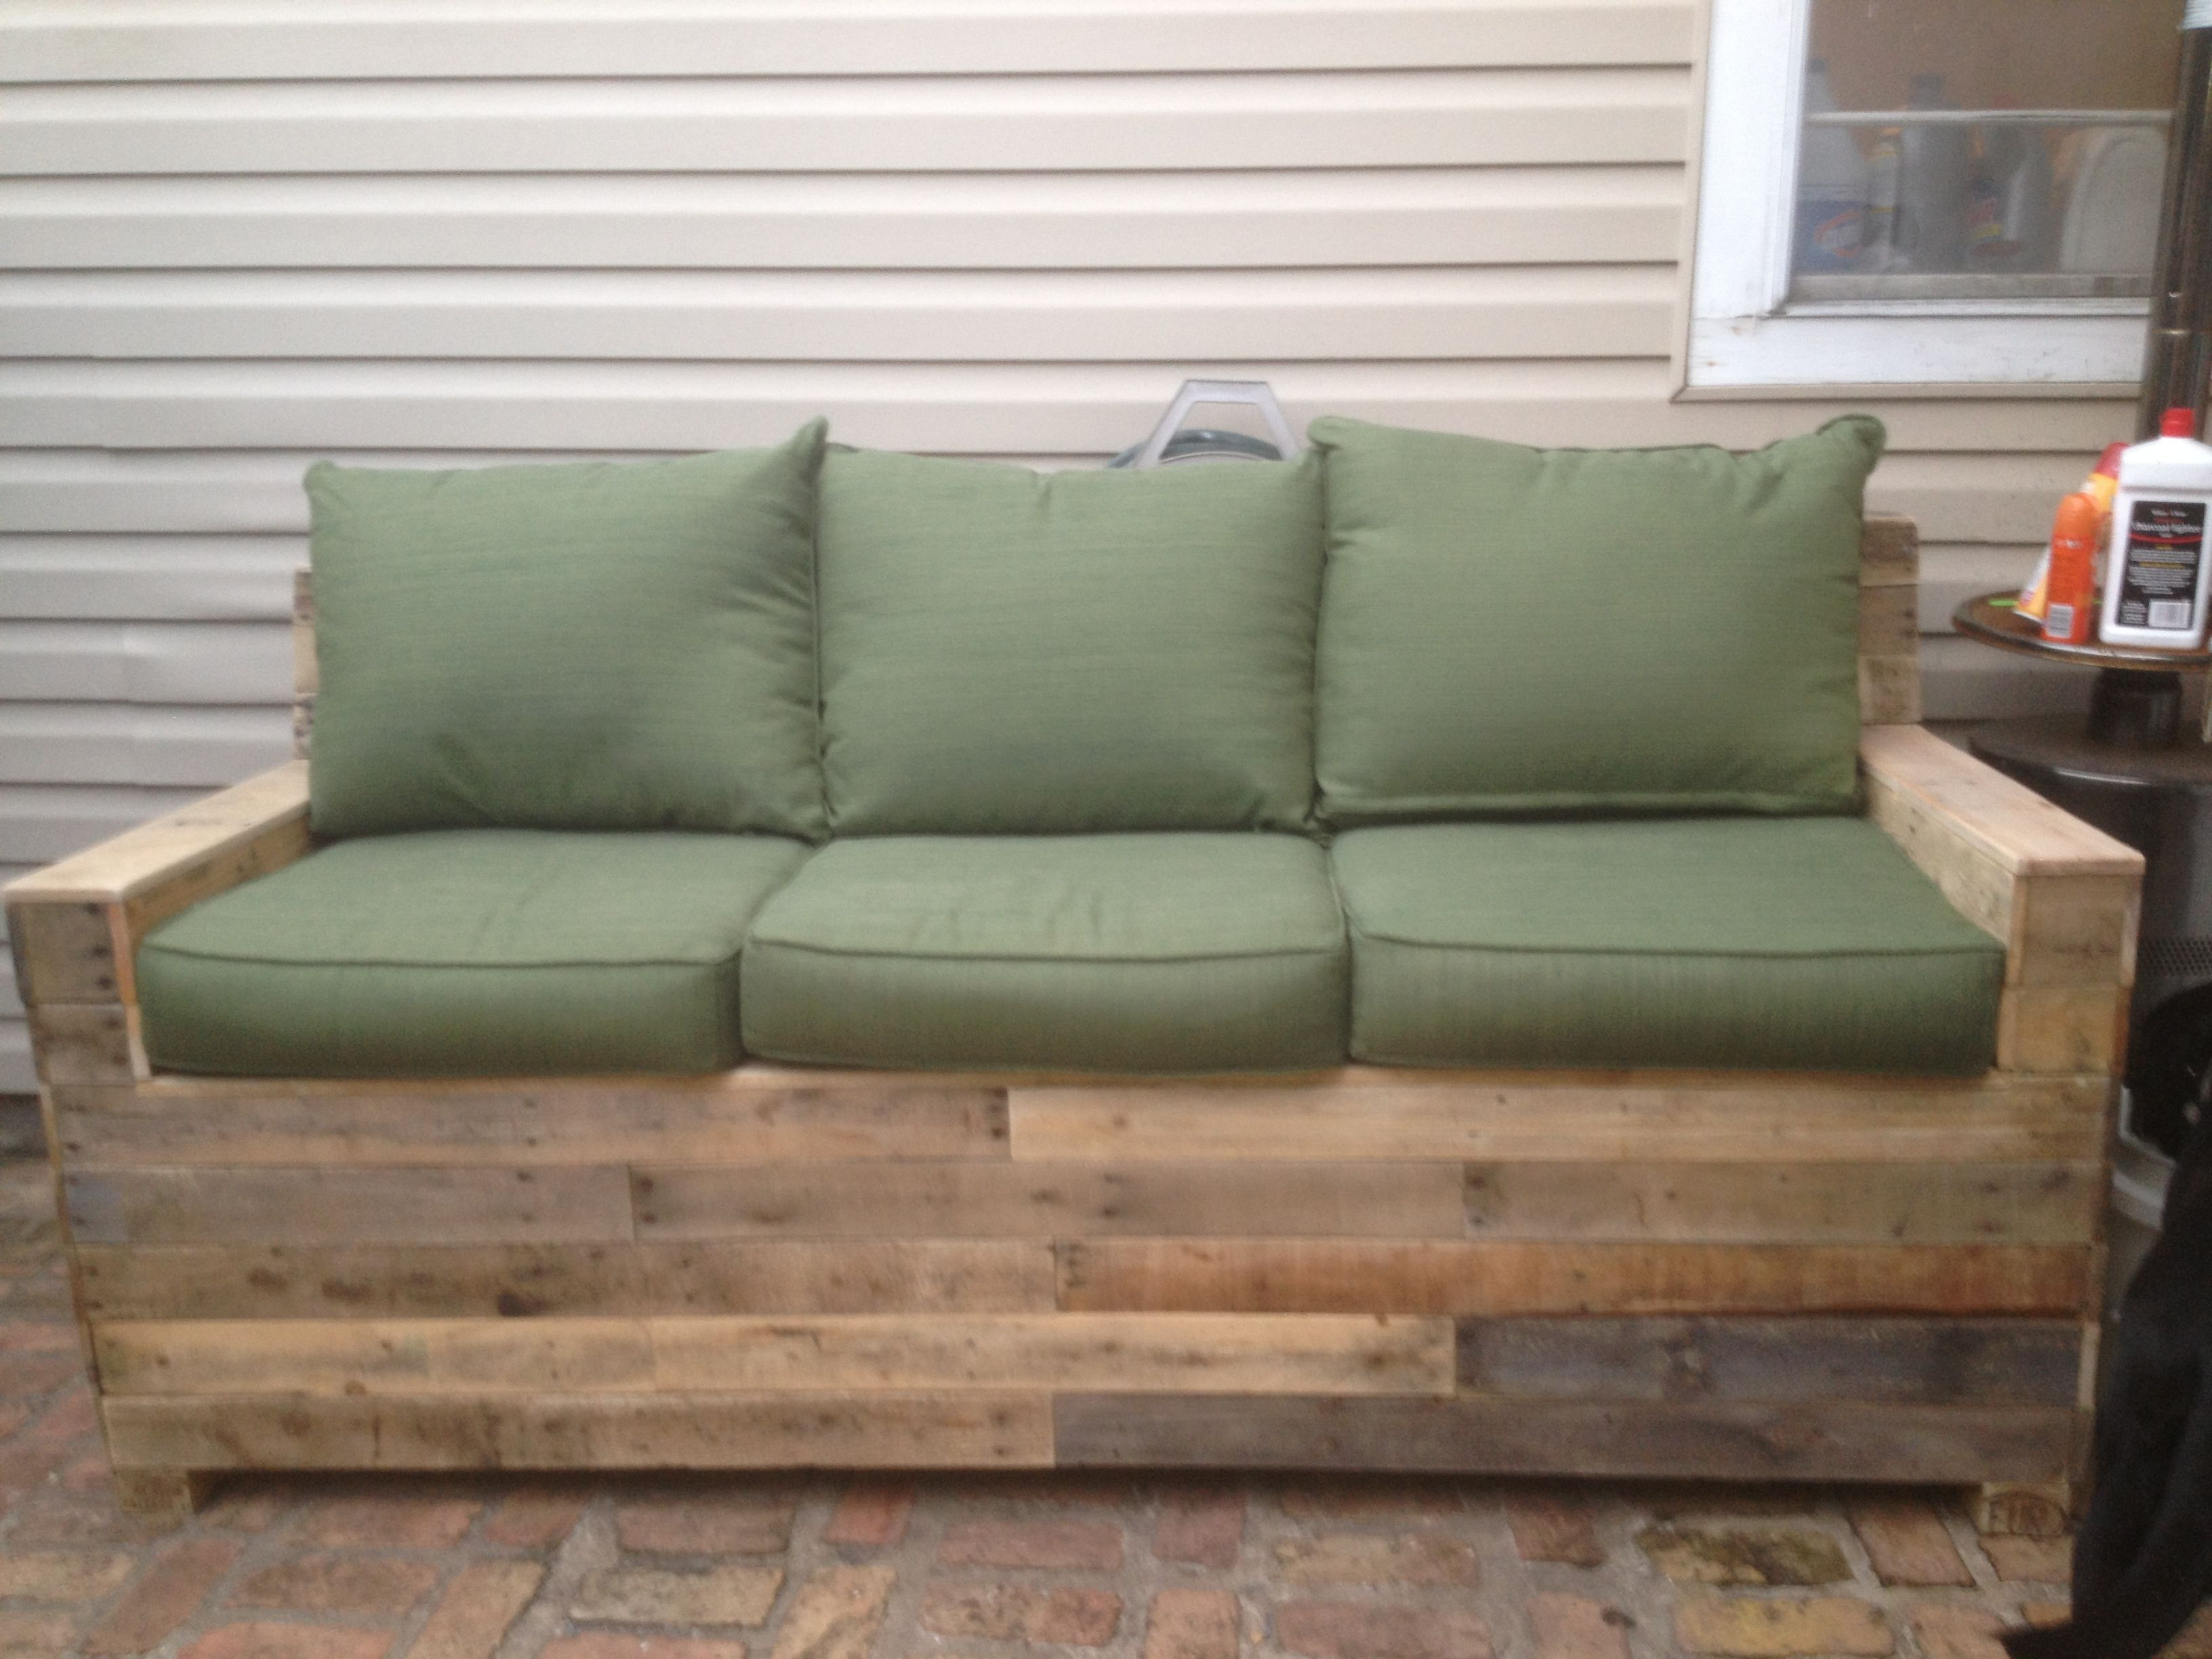 Marvelous Pallet Sofa For Sale 600 Reclaimed Wood Furniture From Home Interior And Landscaping Synyenasavecom